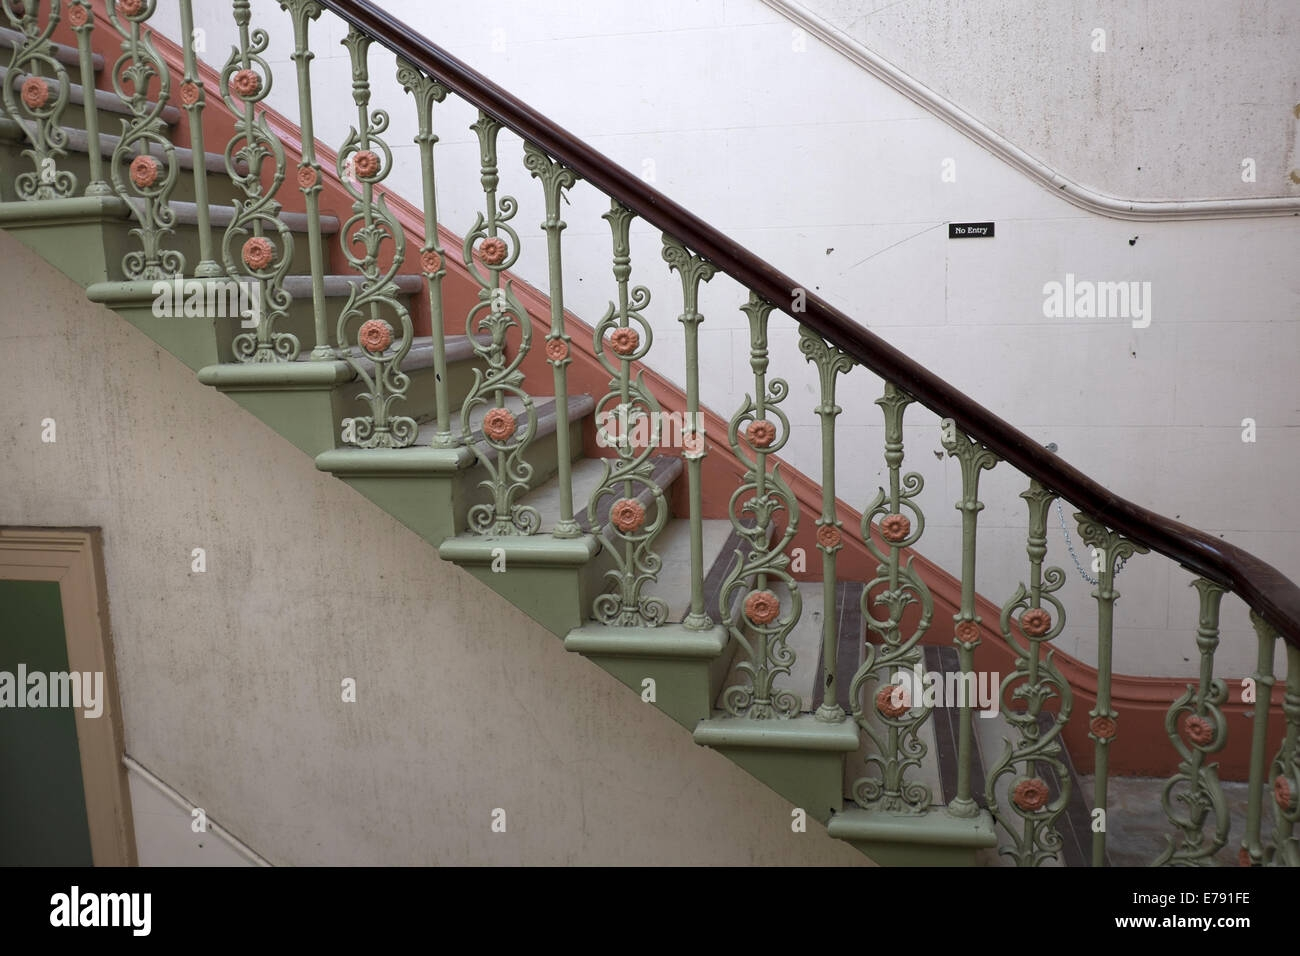 Old Cast Iron Staircase Empty Gloomy Old Building Stock Photo Alamy   Cast Iron Staircase Railing   Modern   Grill   Rod Iron   Floor   Interior